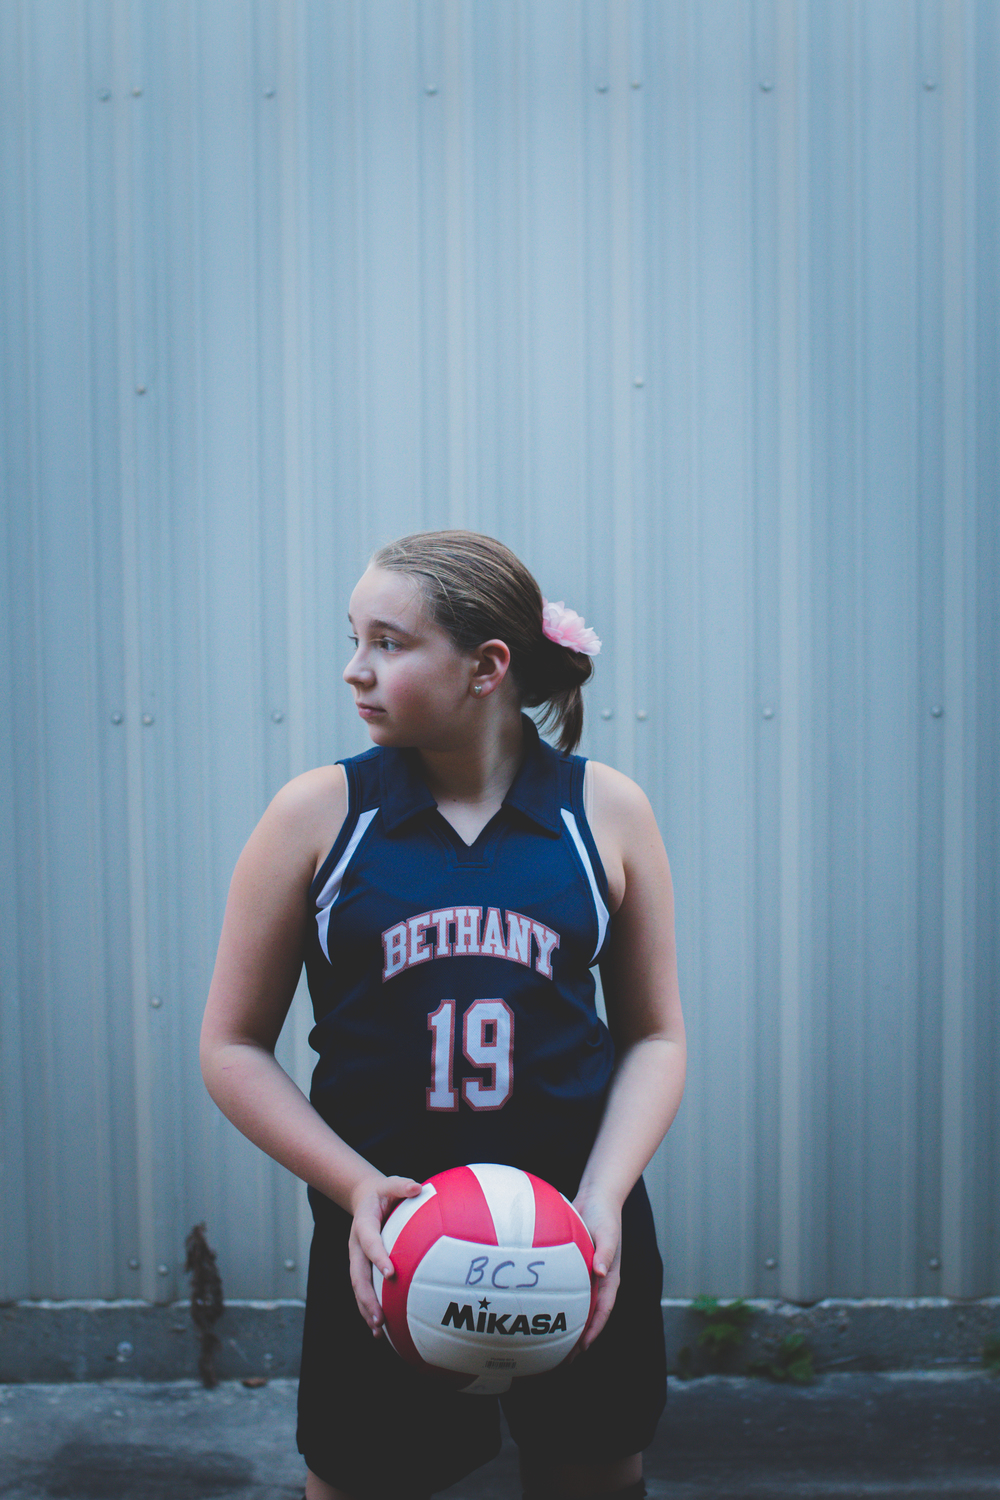 bethany volleyball (4 of 4).jpg